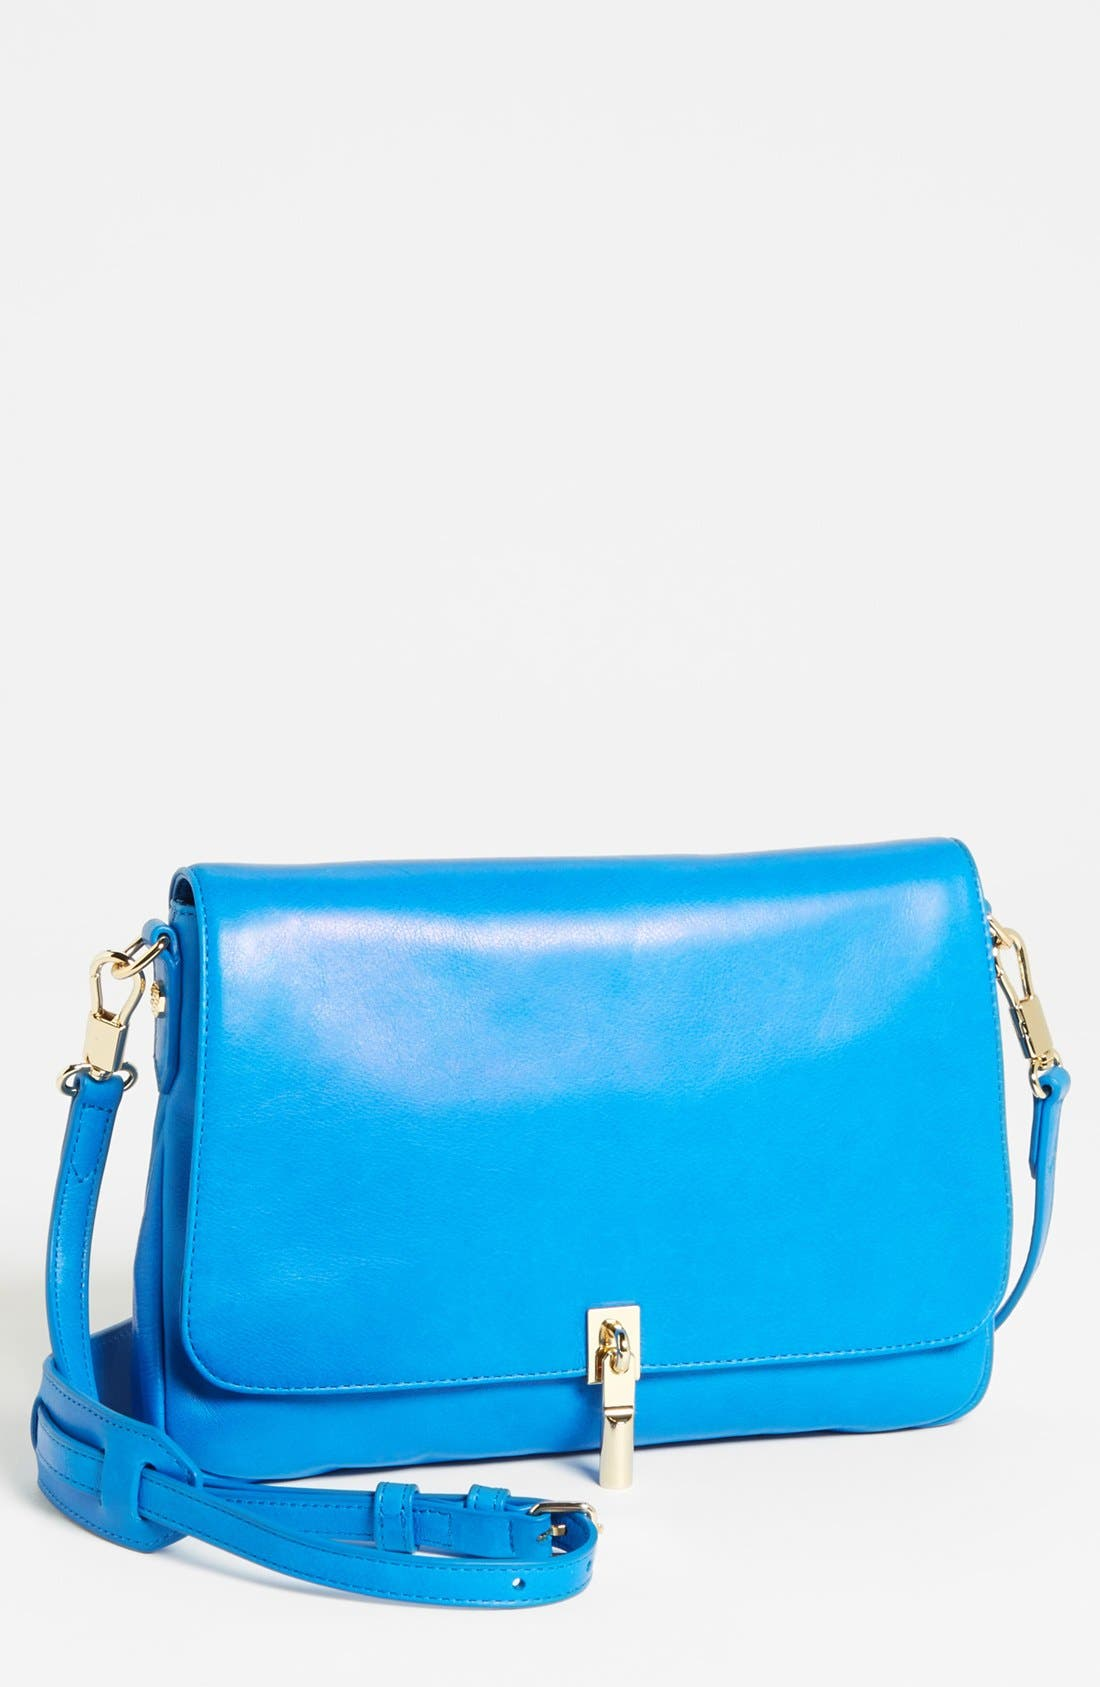 Alternate Image 1 Selected - Elizabeth and James 'Mini' Coated Leather Crossbody Bag